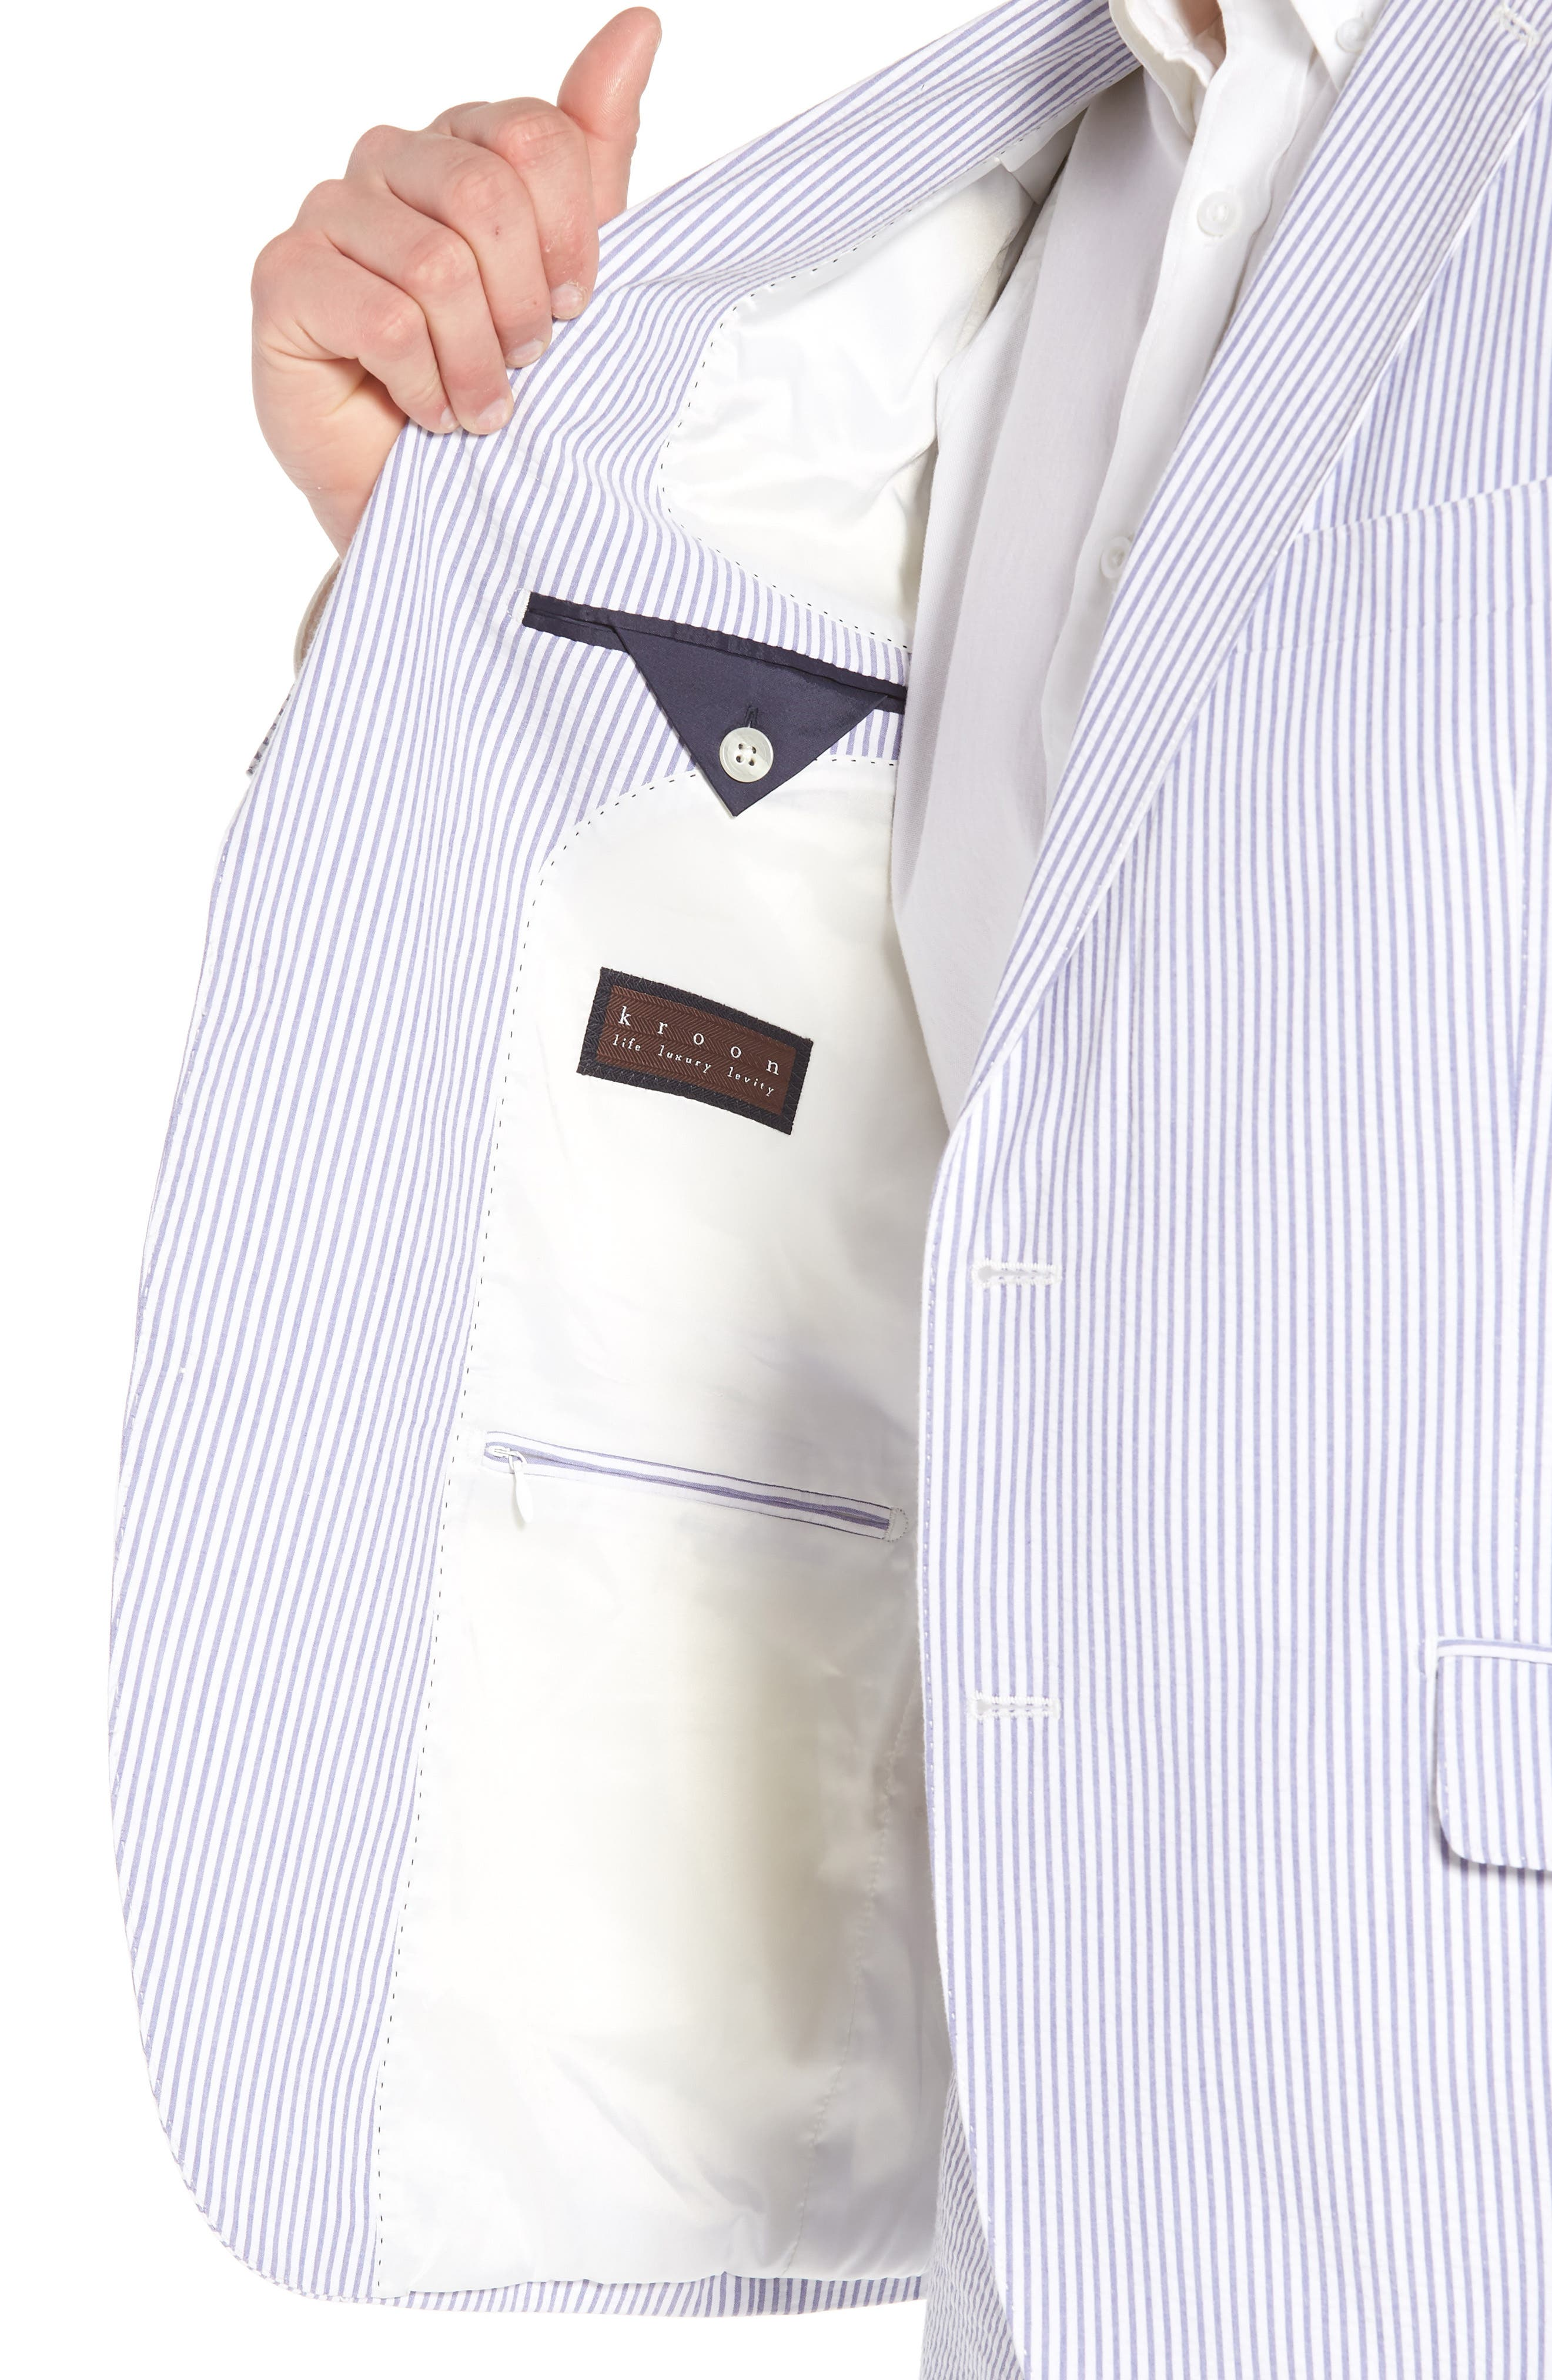 Jack AIM Classic Fit Seersucker Sport Coat,                             Alternate thumbnail 4, color,                             BLUE AND WHITE